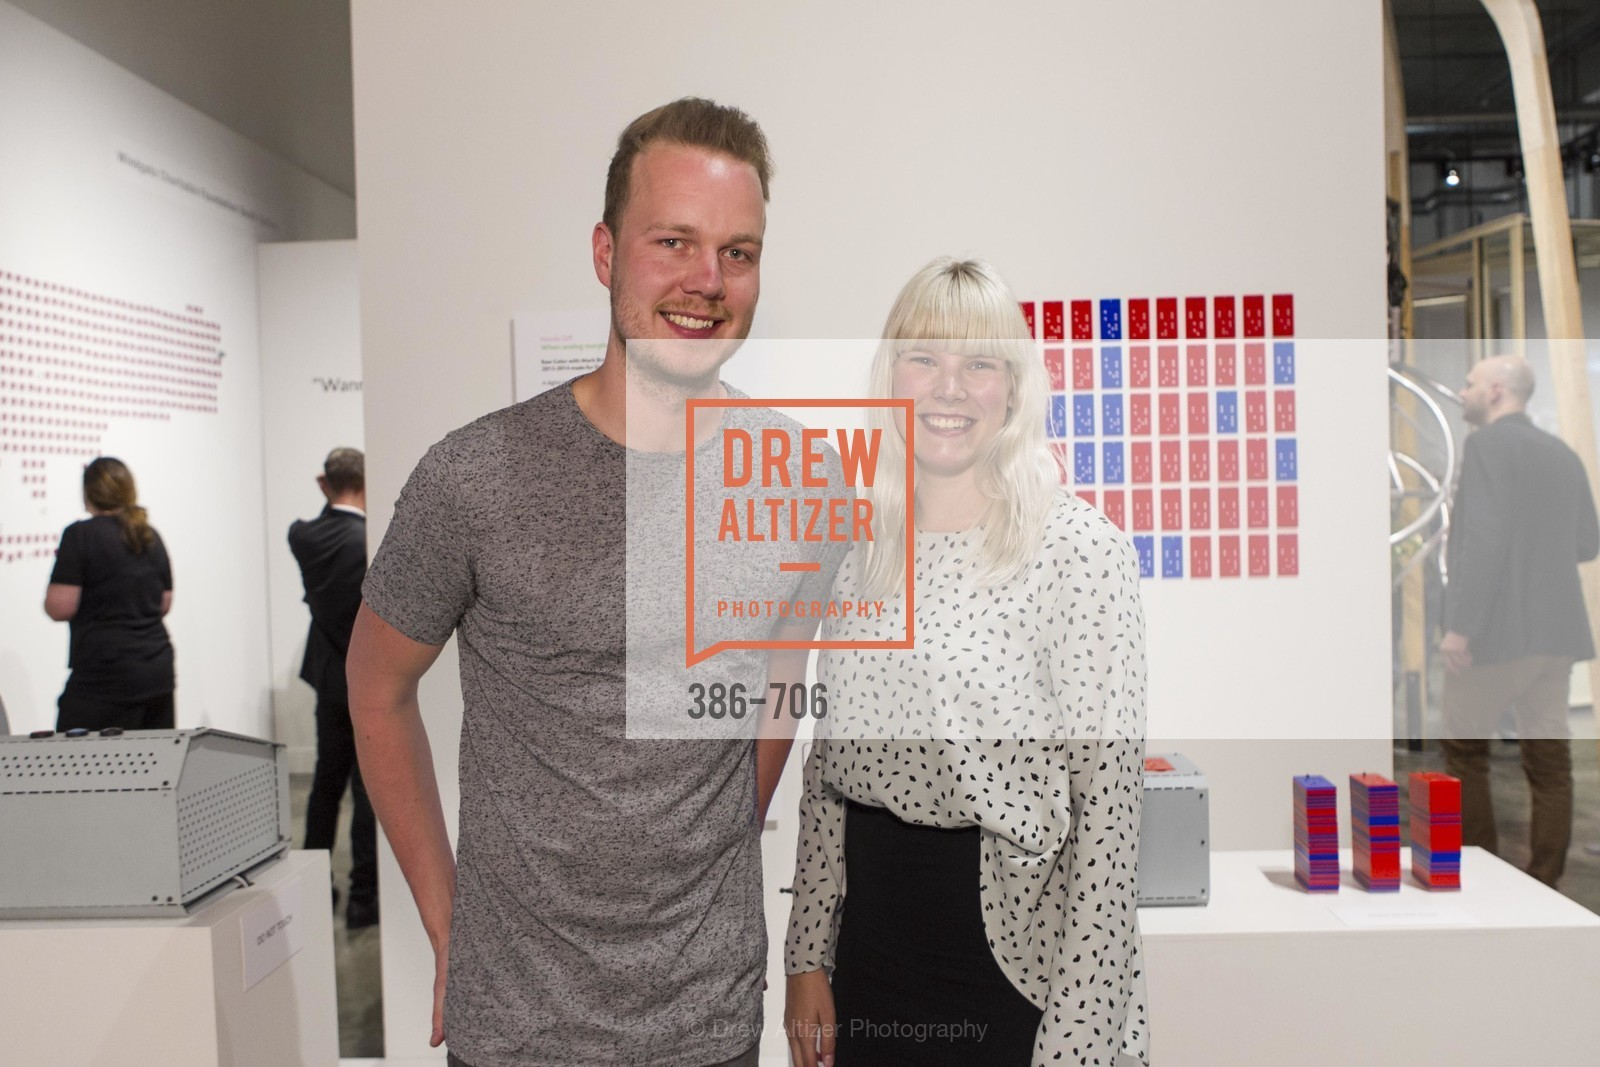 Wouter Hillen, Anne Kolkman, Exhibit Opening at the MUSEUM OF CRAFT AND DESIGN - Hands Off: New Dutch Design at the Confluence of Technology & Craft, US, May 8th, 2015,Drew Altizer, Drew Altizer Photography, full-service agency, private events, San Francisco photographer, photographer california